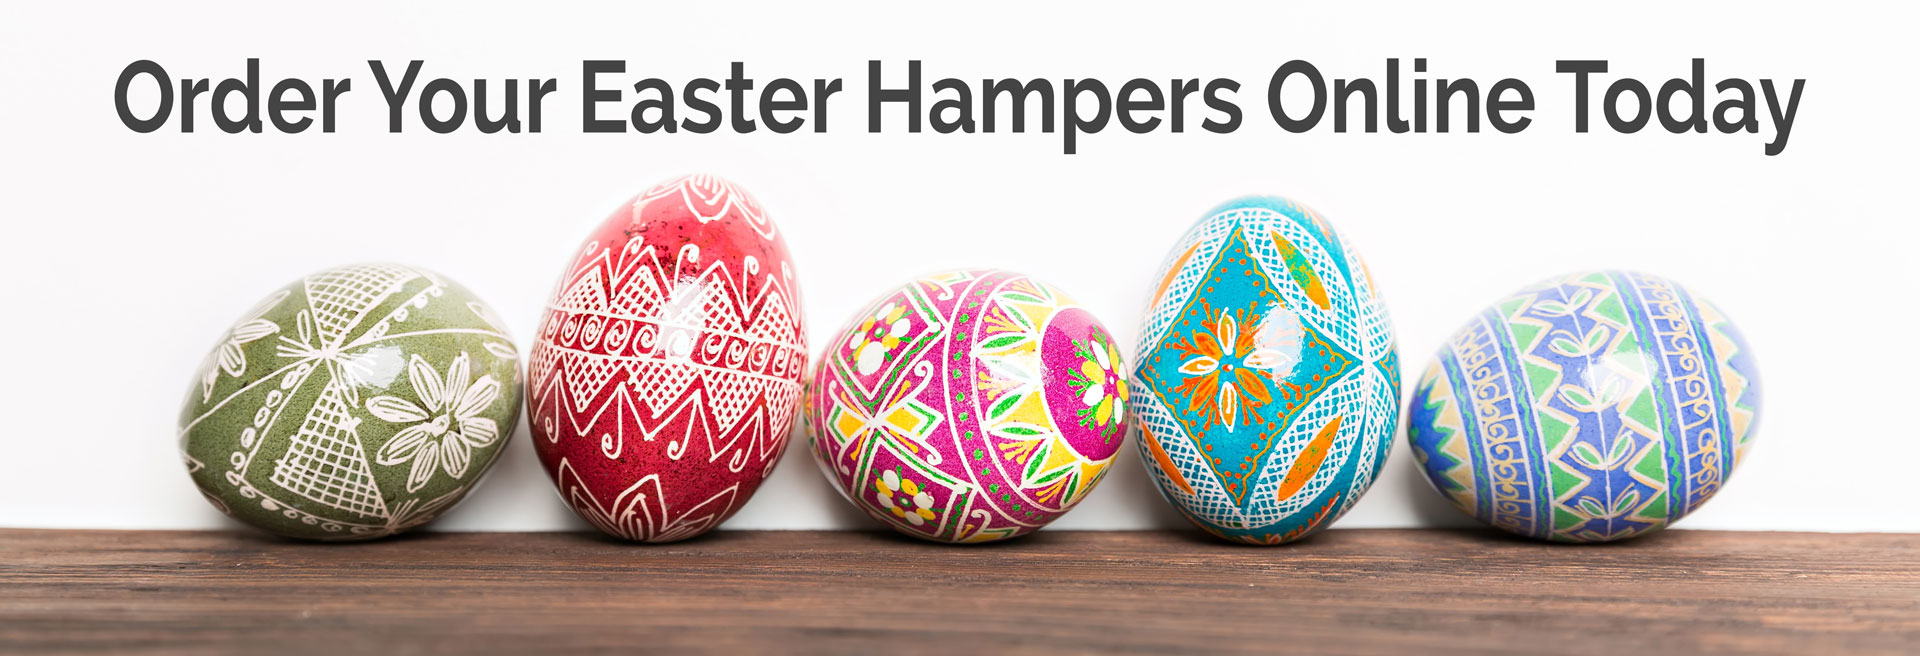 Gifts order your easter hampers today hamper world corporate gifts order your easter hampers today hamper world negle Choice Image